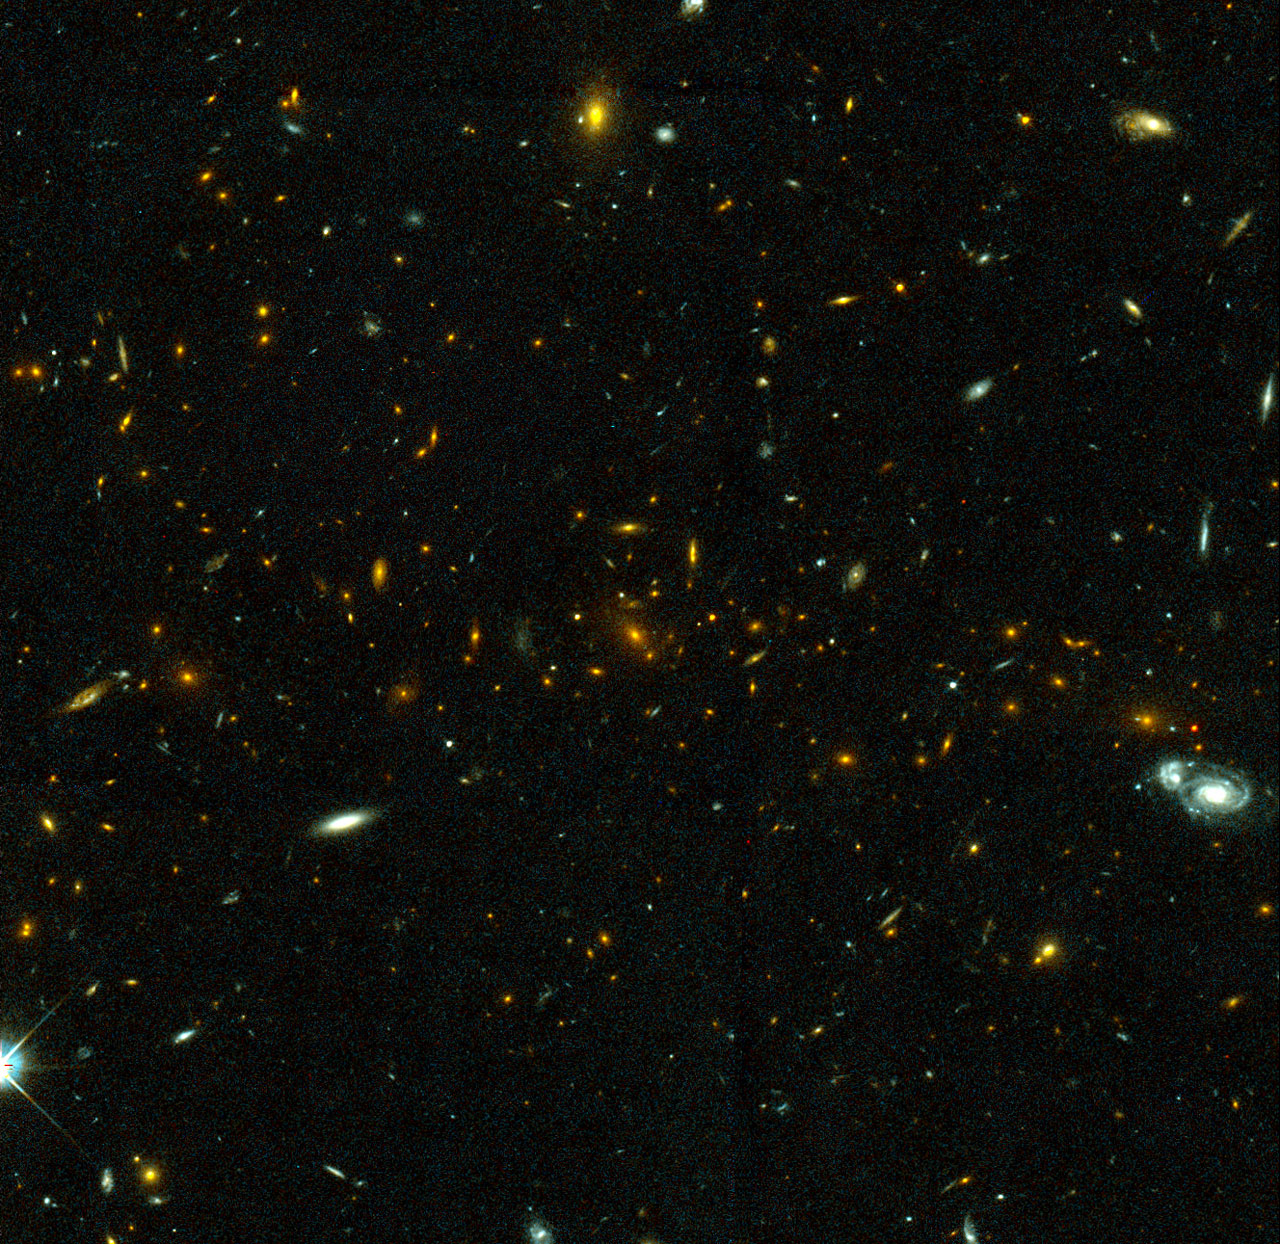 Galaxy Cluster MS1054-03